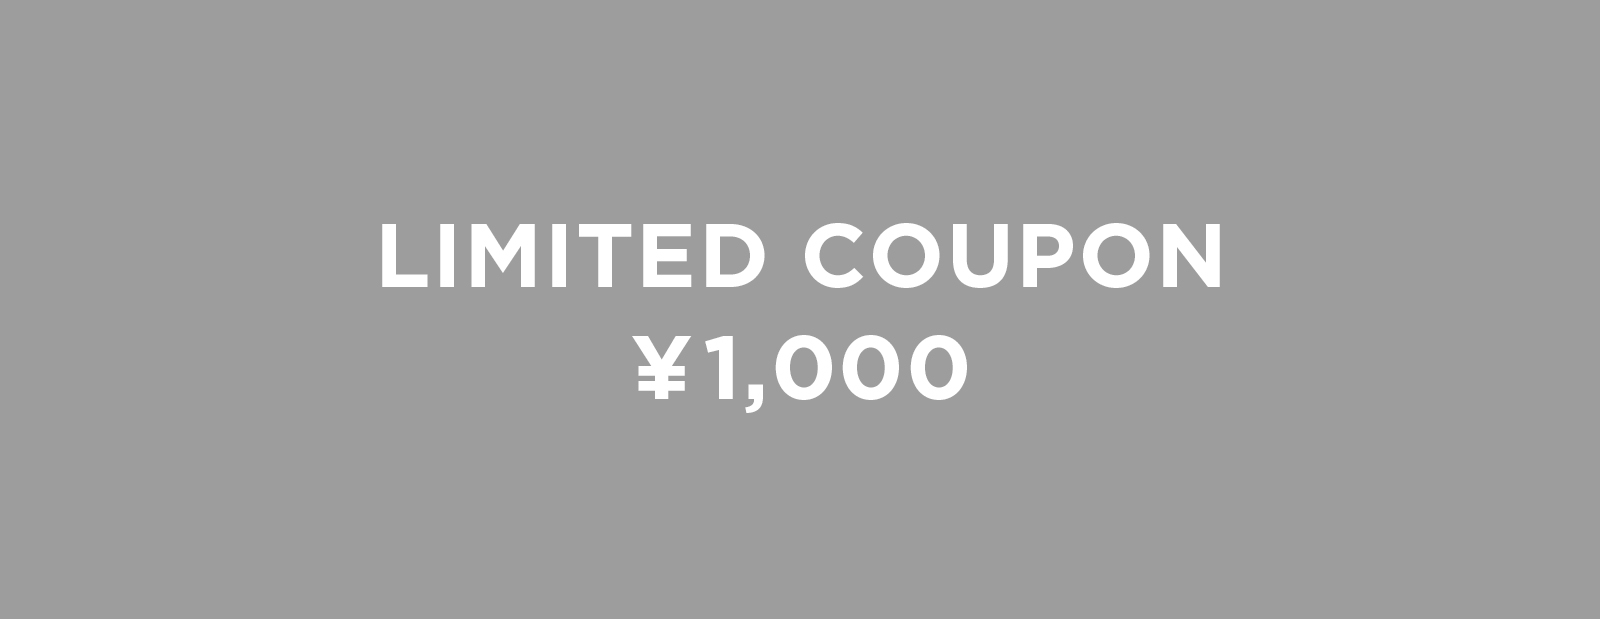 HUMOR LIMITED COUPON